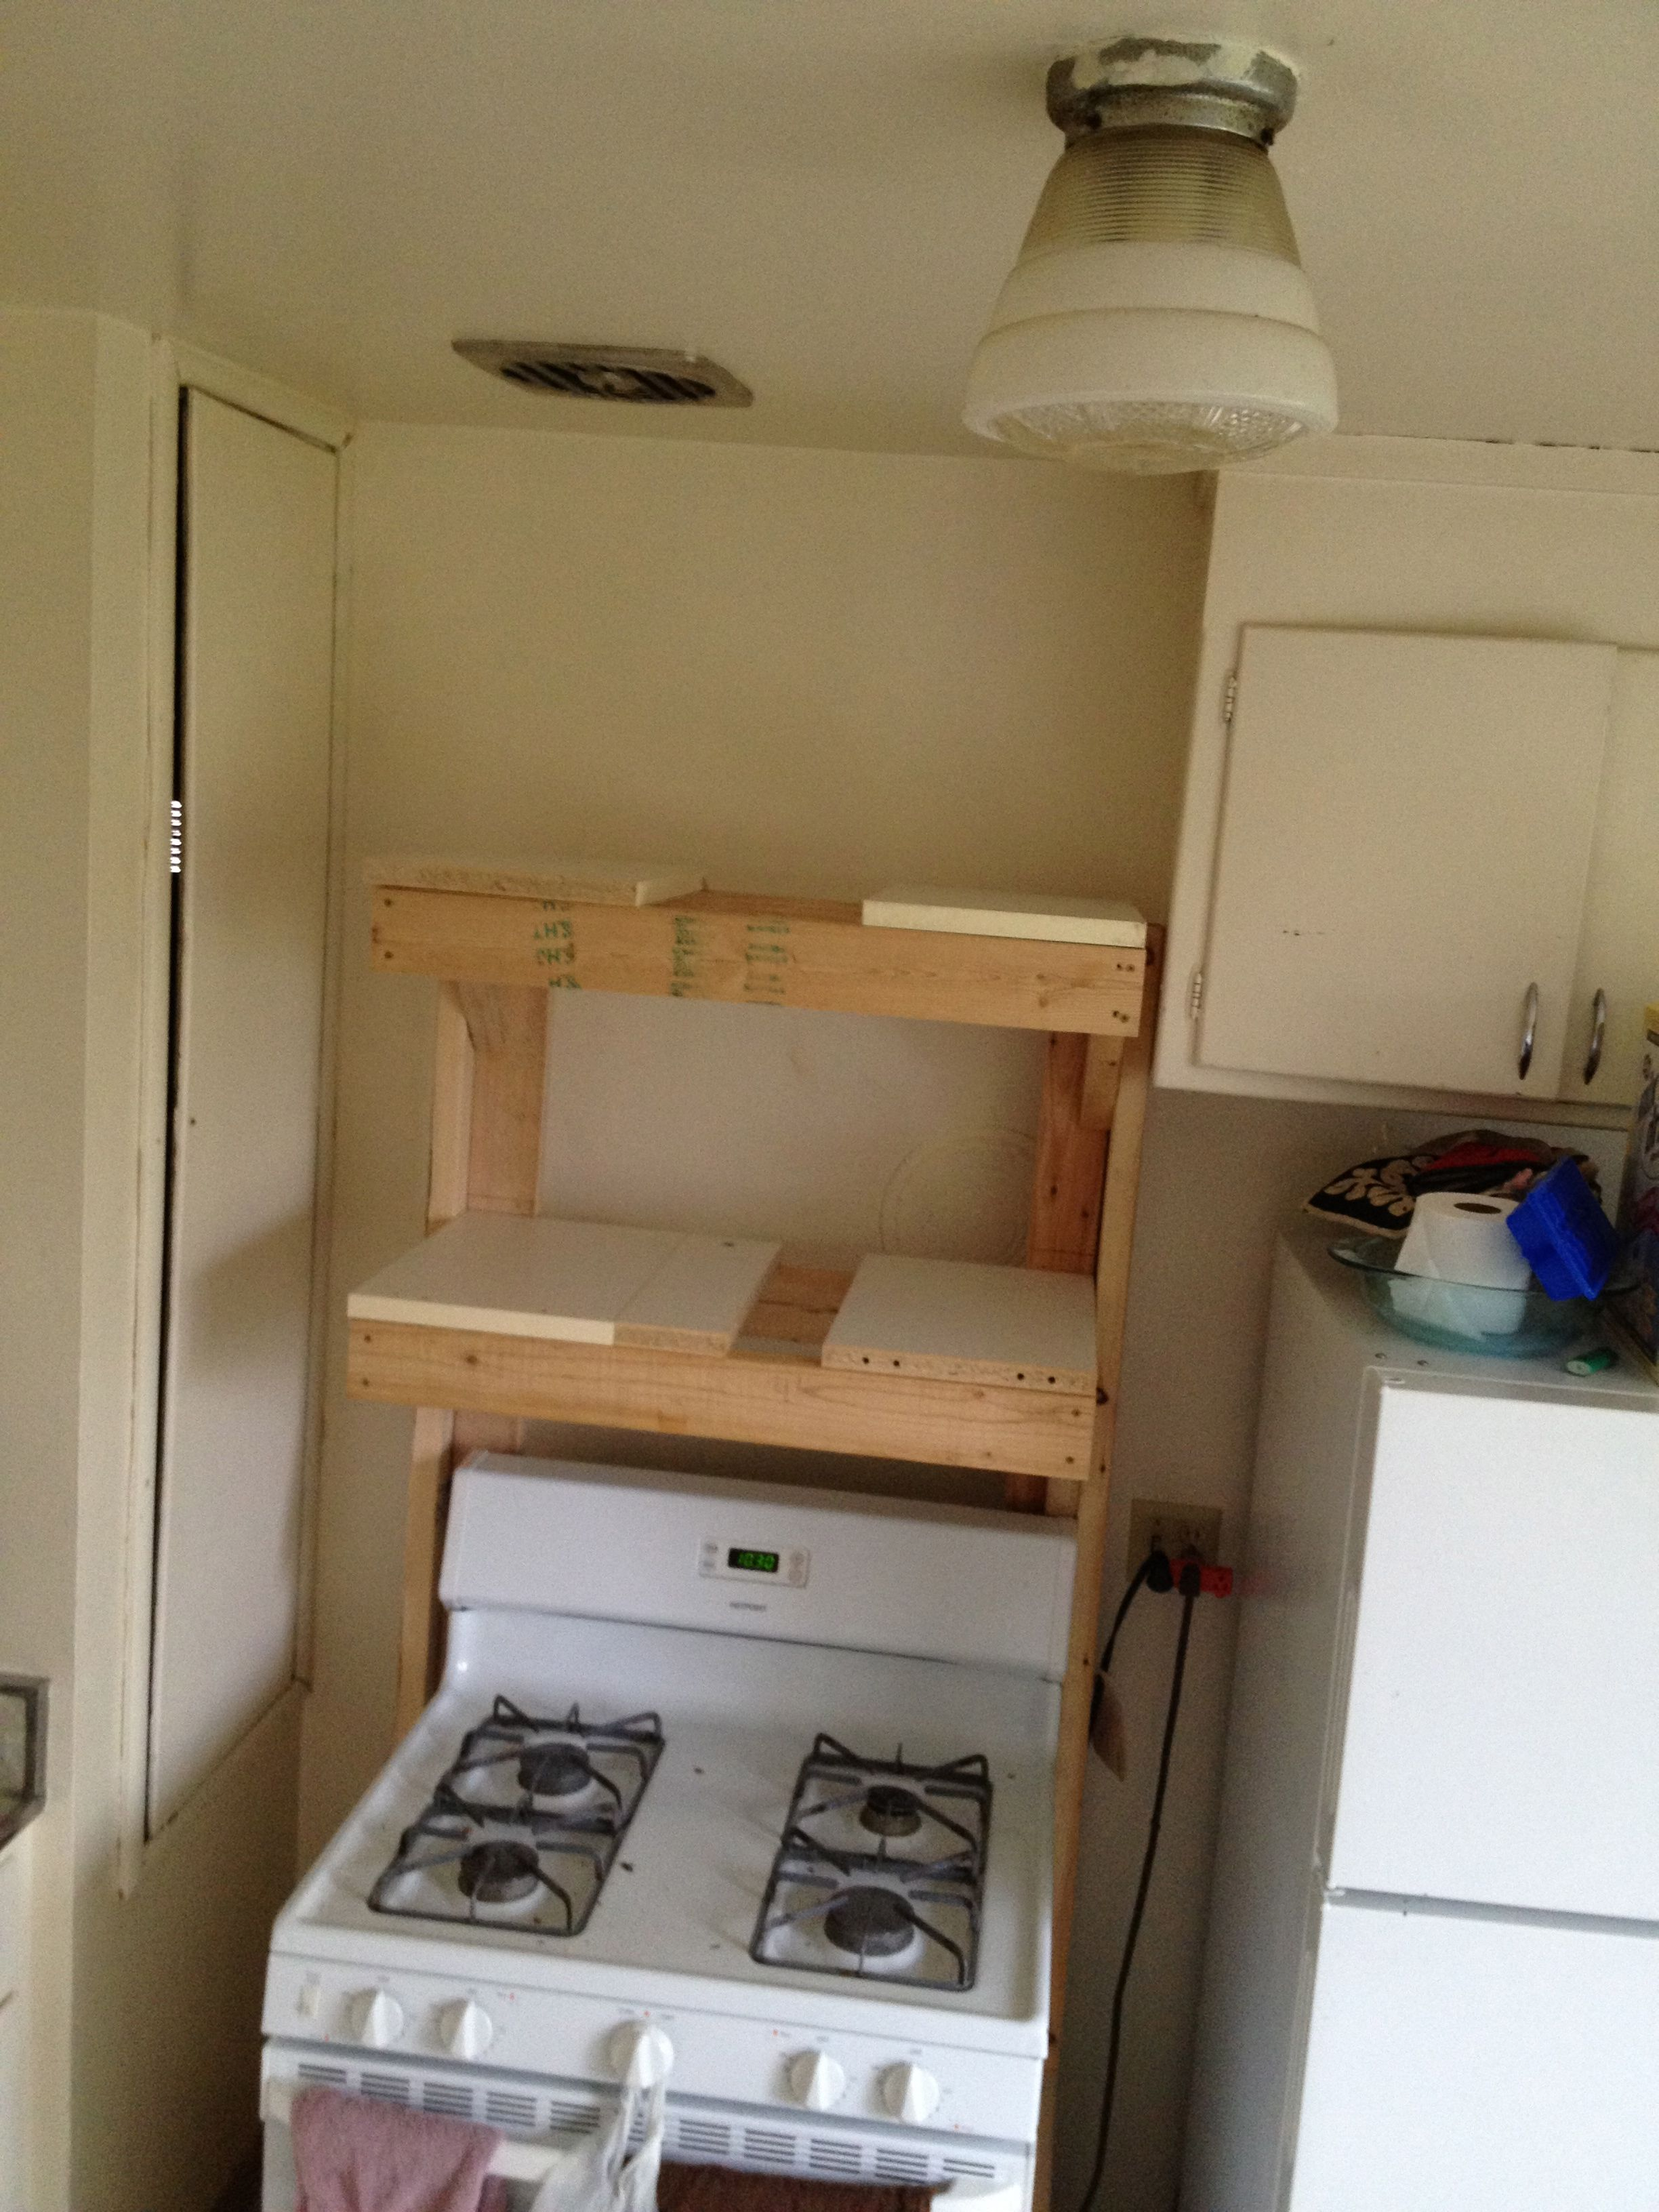 2X4 freestanding microwave shelf | My homemade projects ...